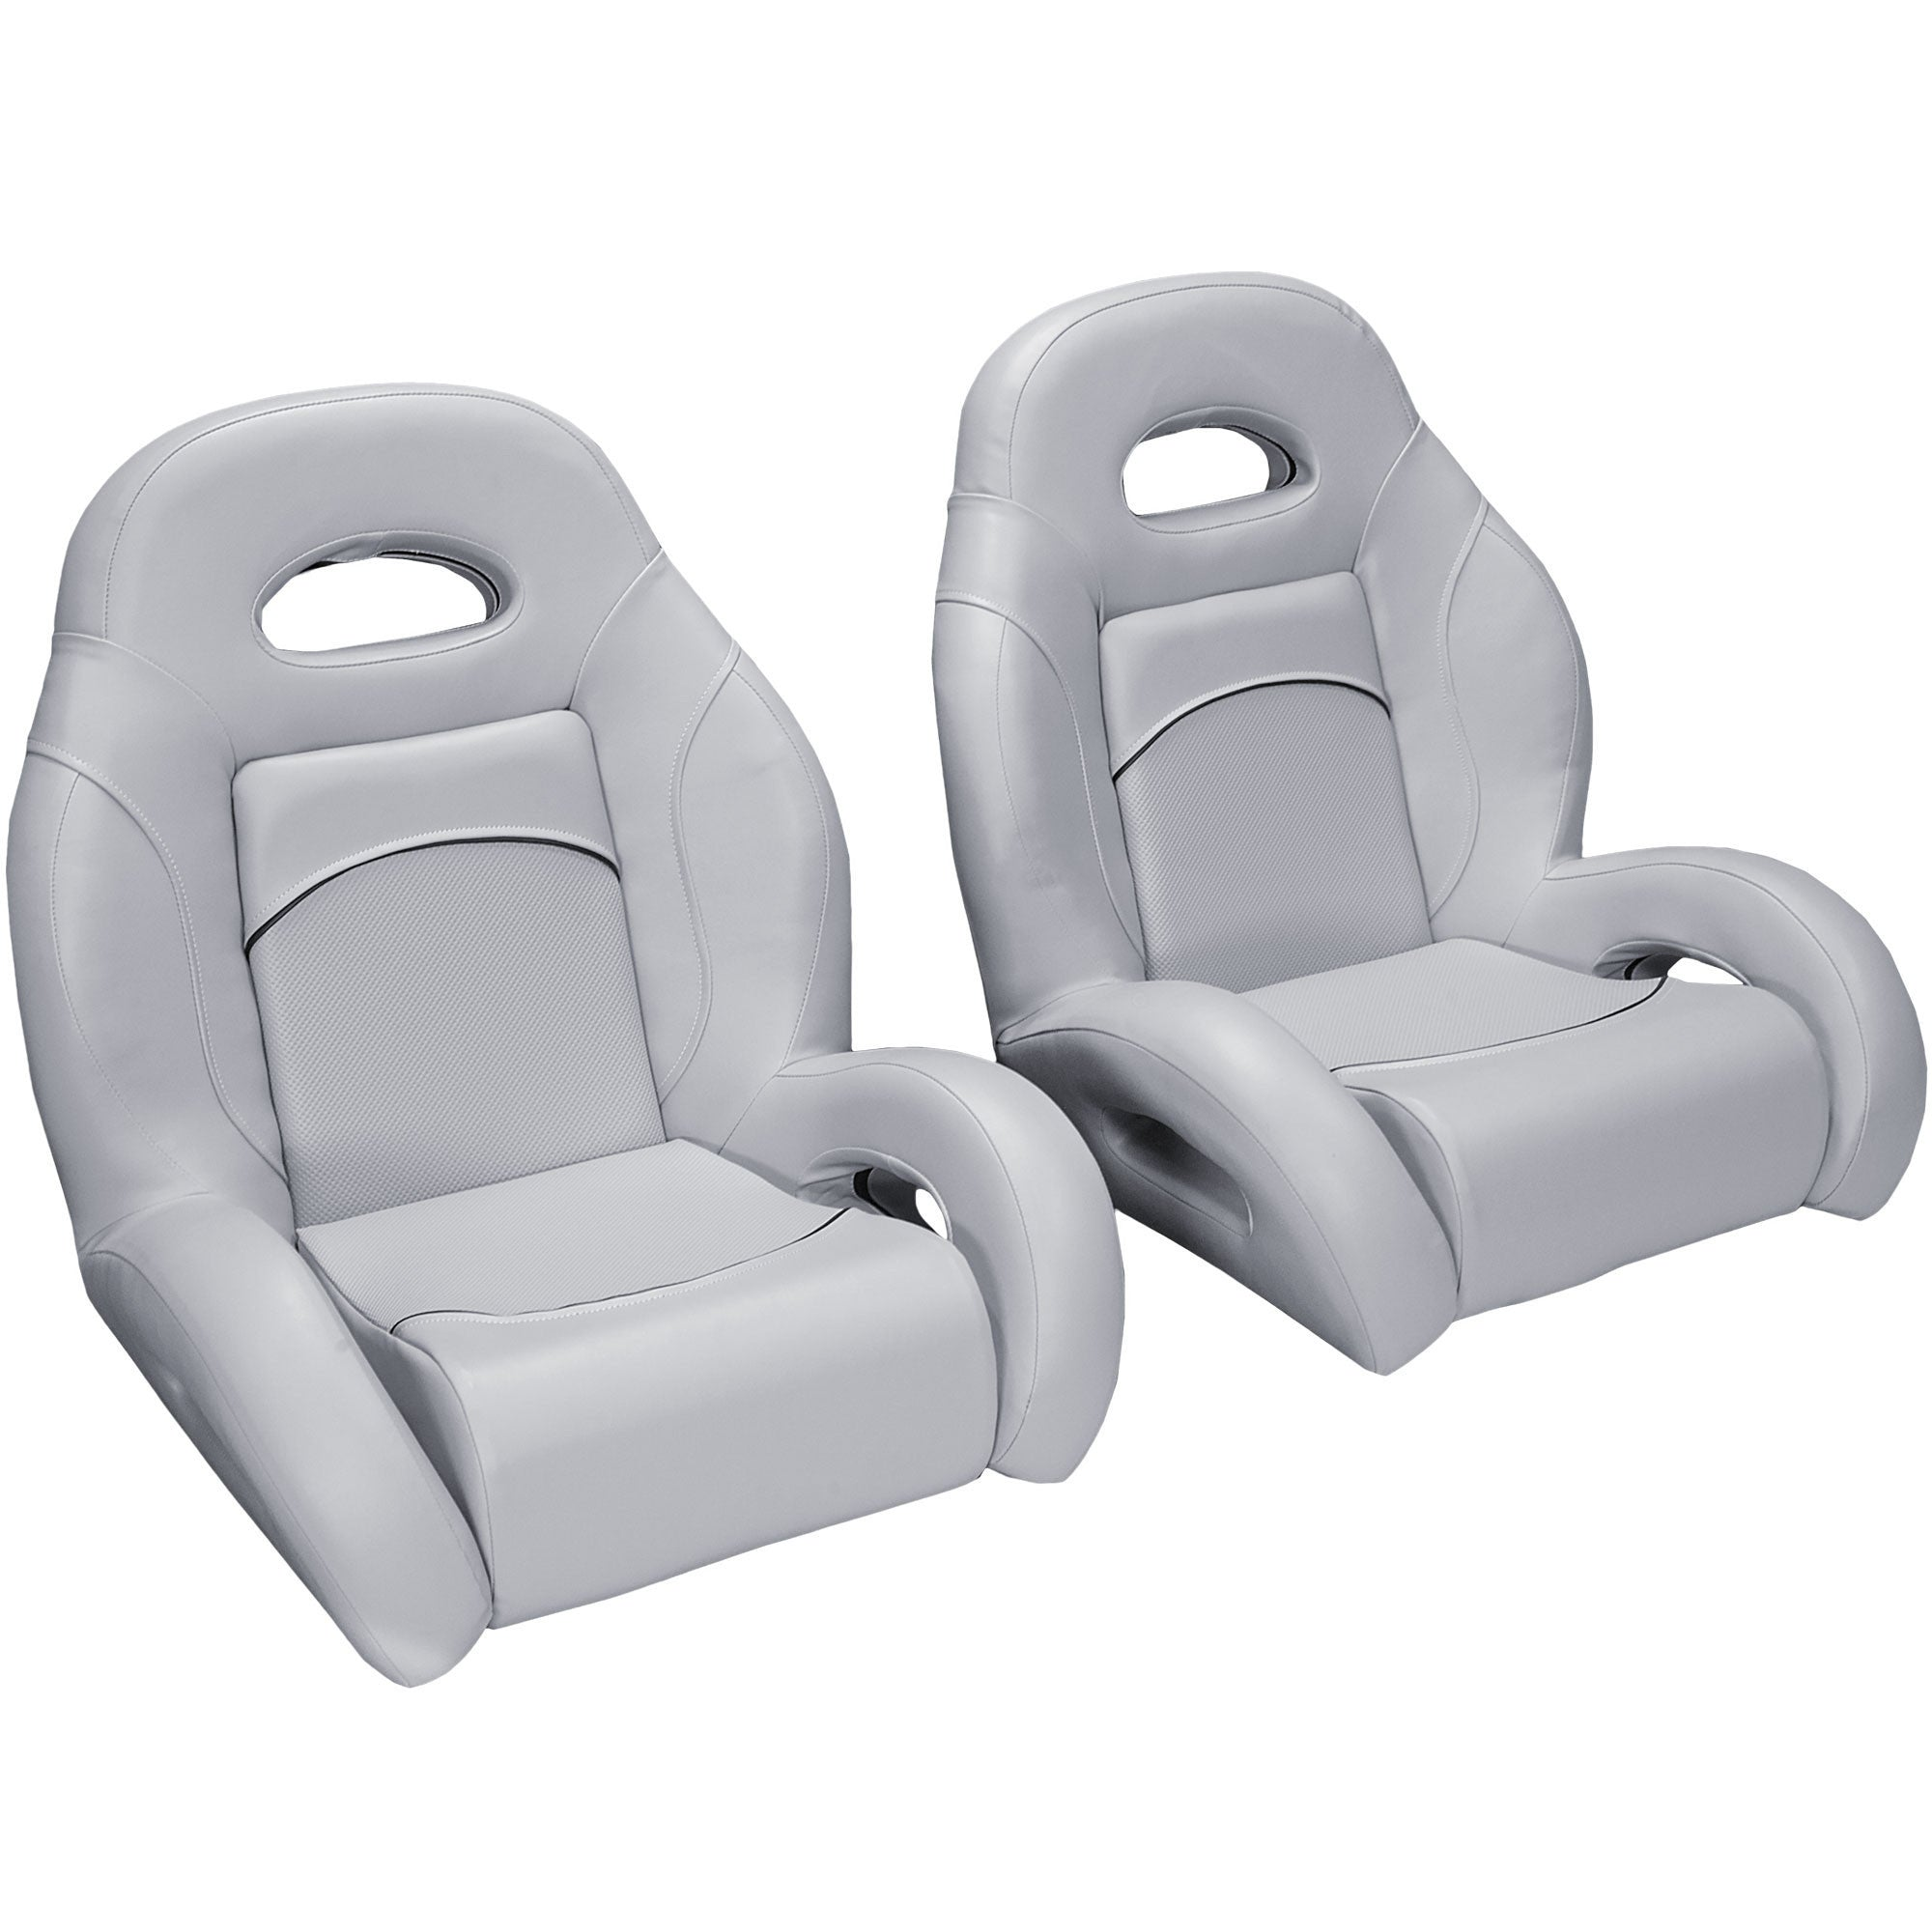 Pair) Bass Boat Bucket Seats | Boat Seats